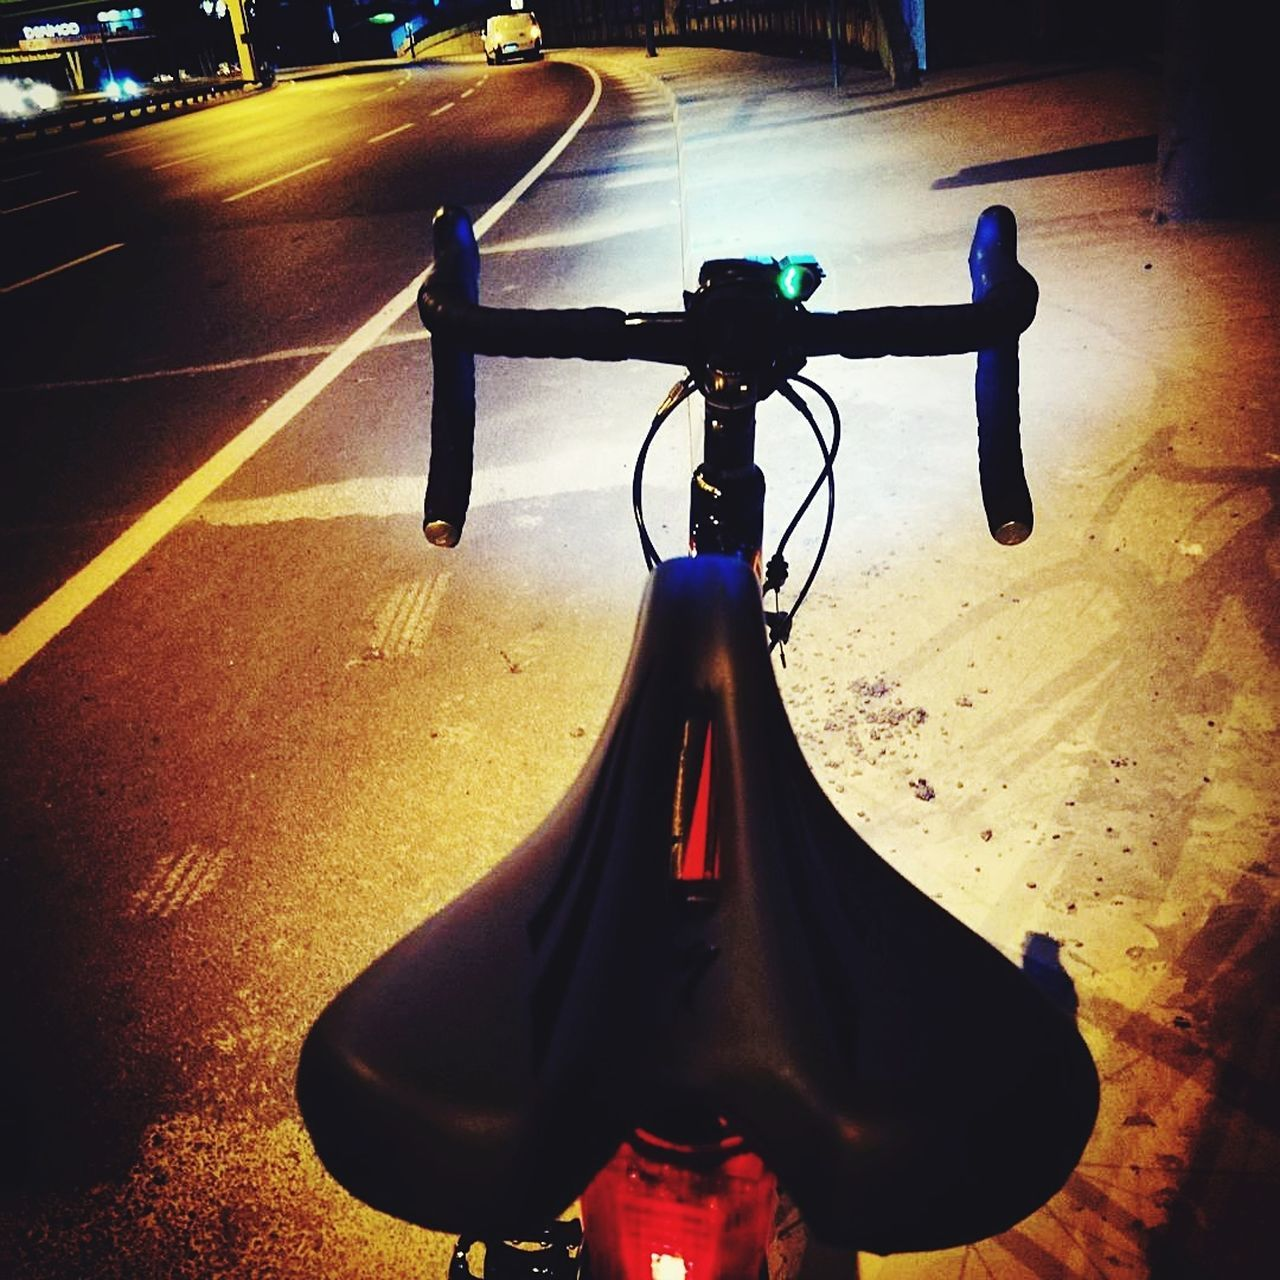 Bicycle Transportation Night City Only Men One Man Only Outdoors People Adult